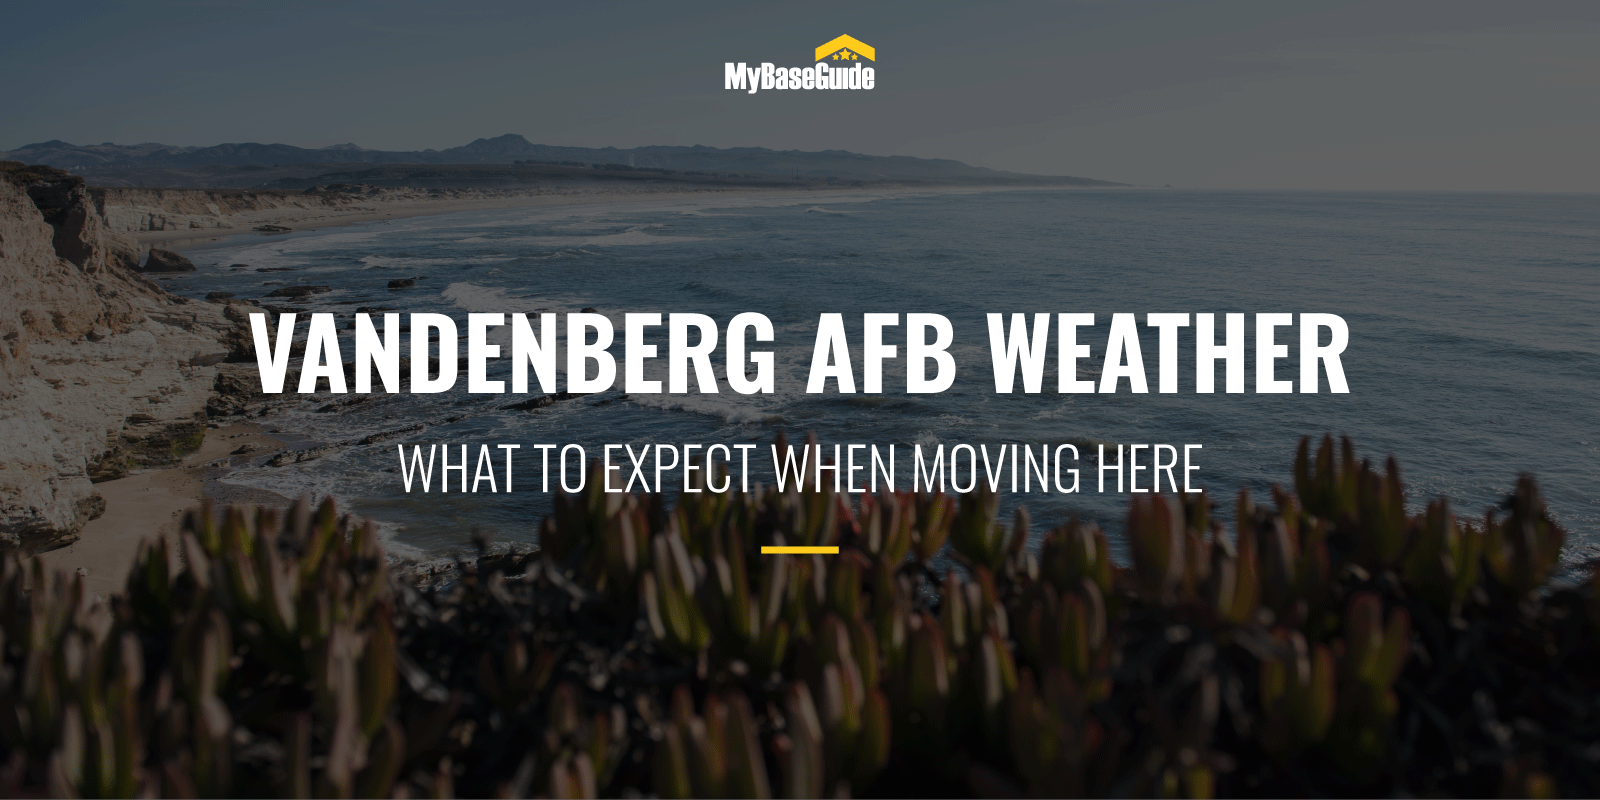 Vandenberg AFB Weather: What To Expect When Moving Here